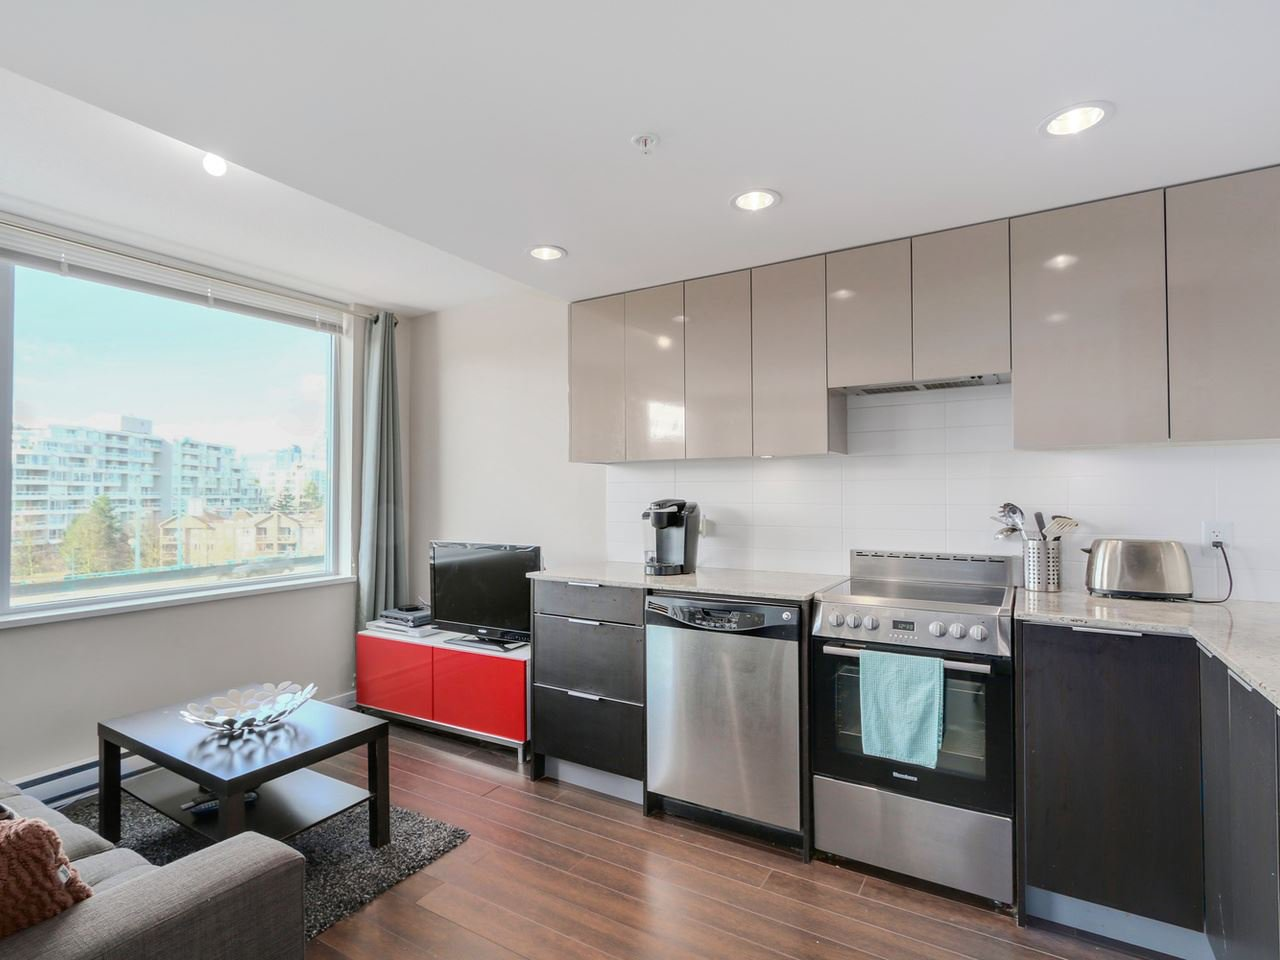 "Main Photo: 612 445 W 2ND Avenue in Vancouver: False Creek Condo for sale in ""Maynard's Block"" (Vancouver West)  : MLS®# R2034960"